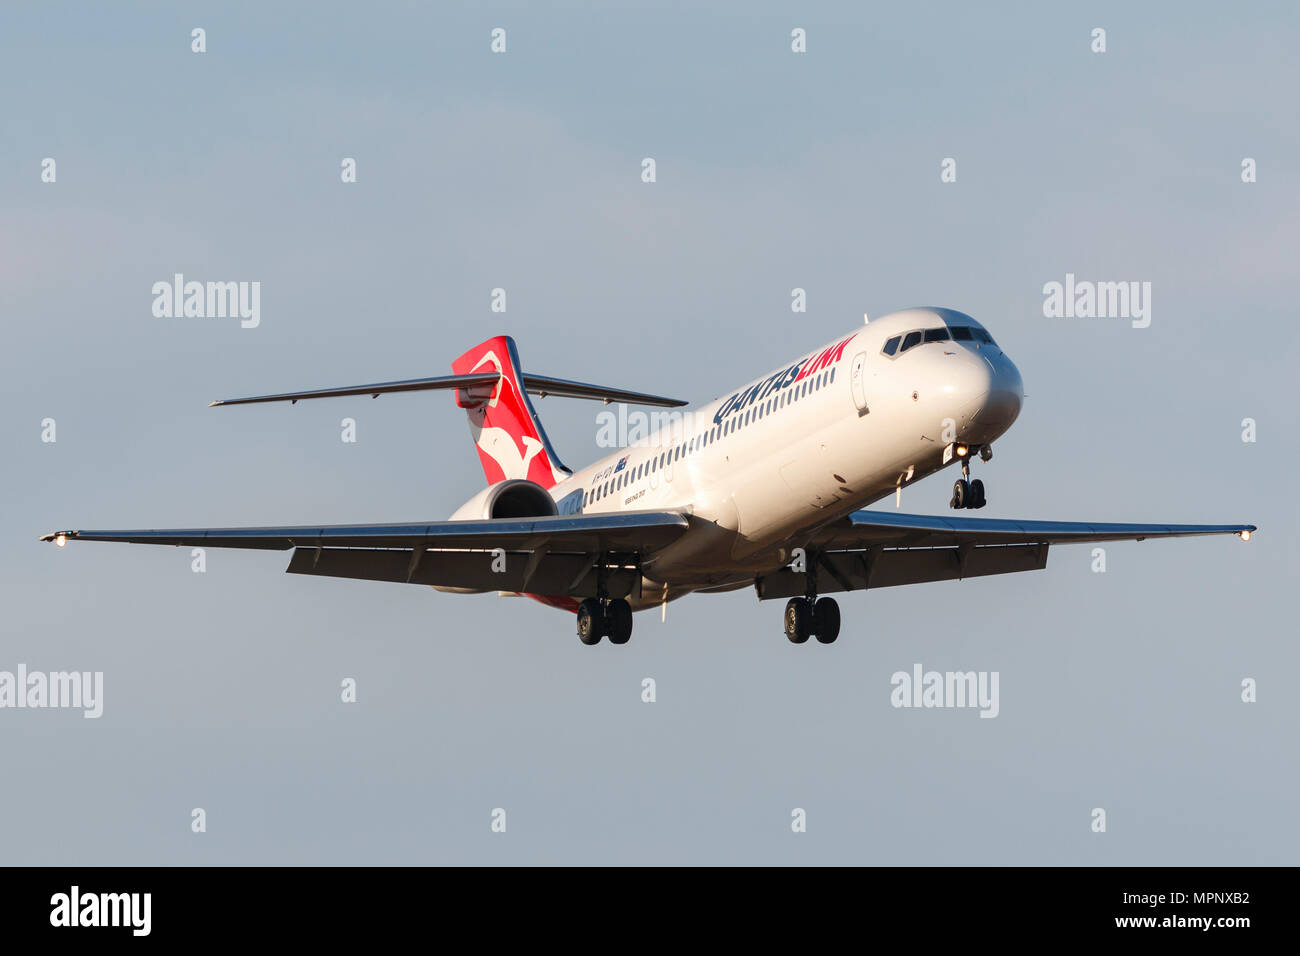 QantasLink Boeing 717-2BL aircraft VH-YQV on approach to Melbourne International Airport. - Stock Image